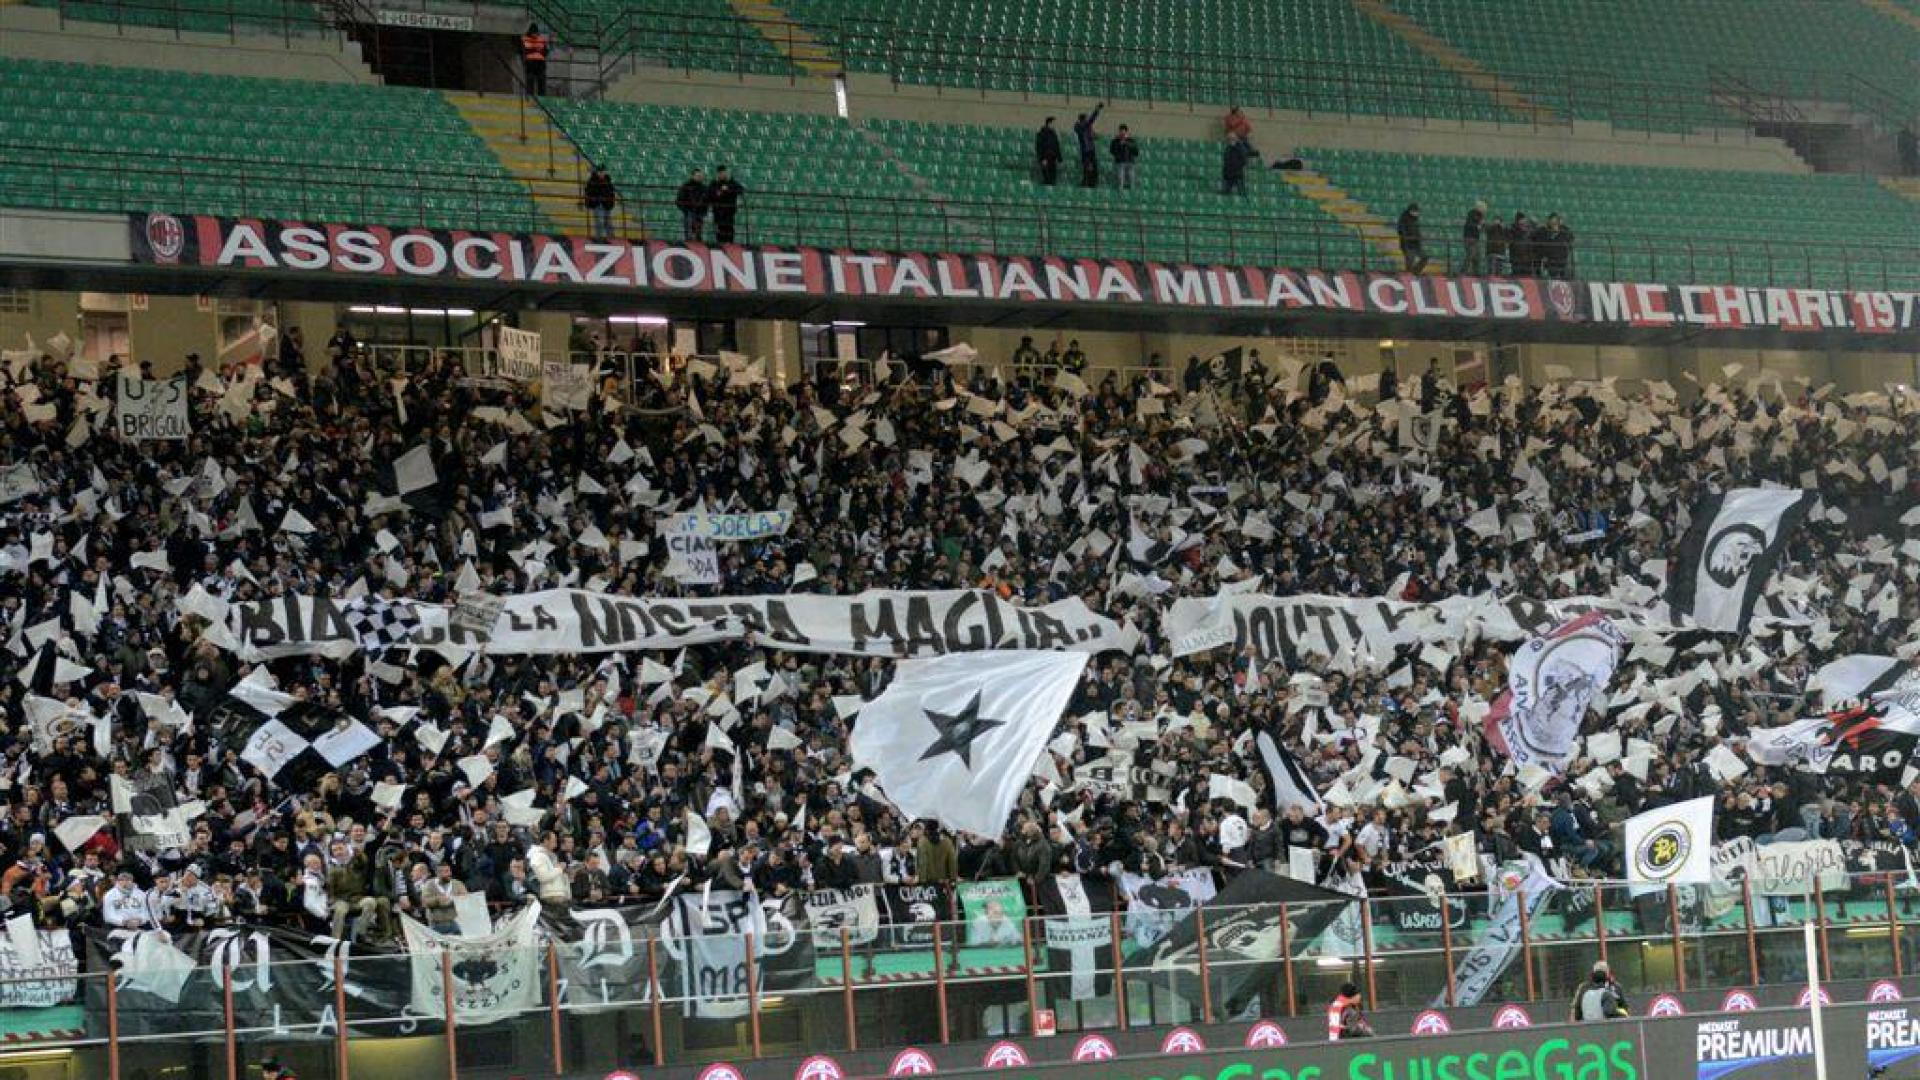 2013/2015 - I playoff e l'invasione di San Siro